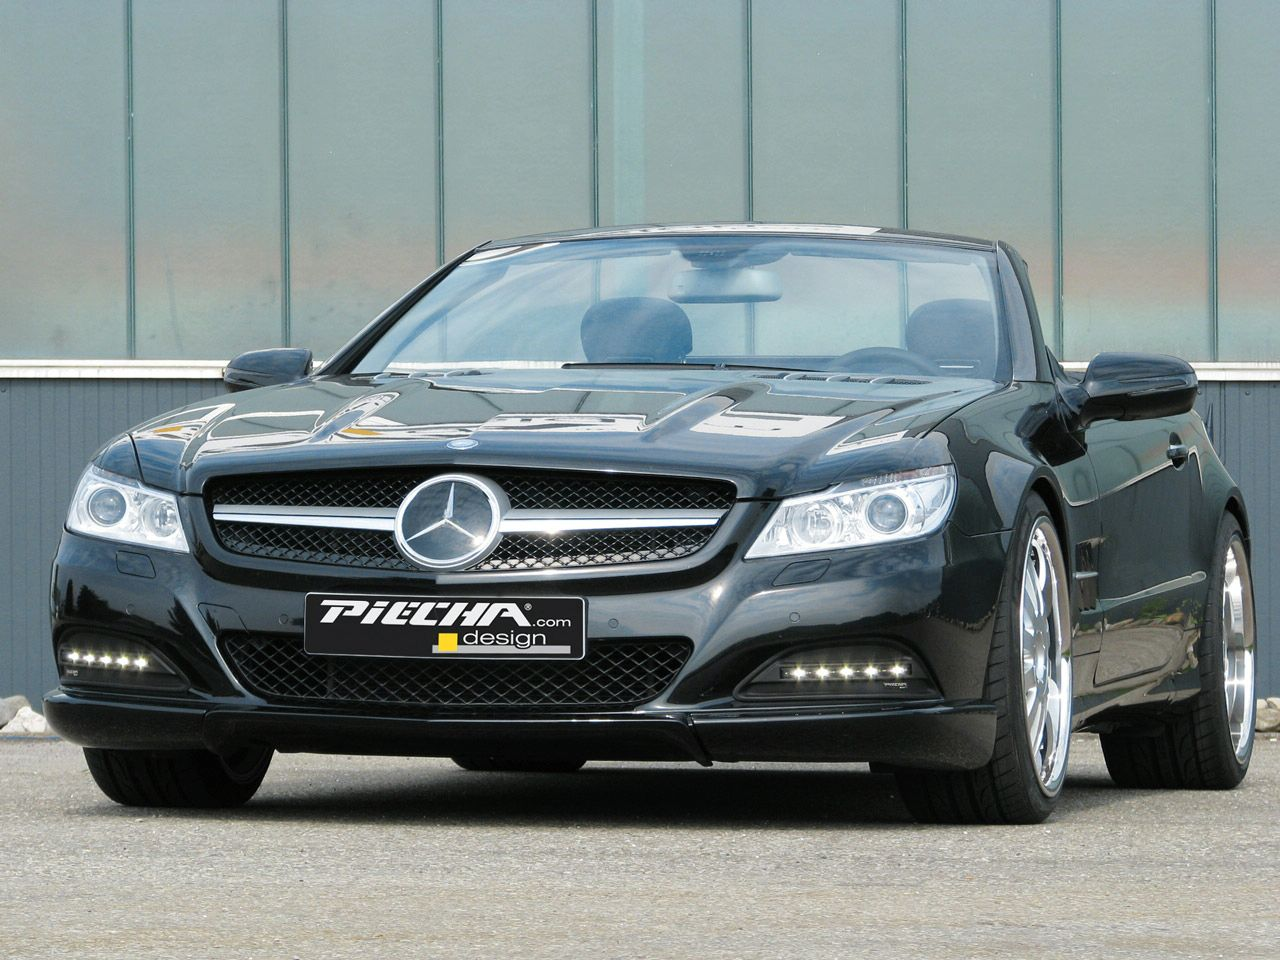 Piecha design mercedes benz sl r230 avalange rs news for Mercedes benz sl r230